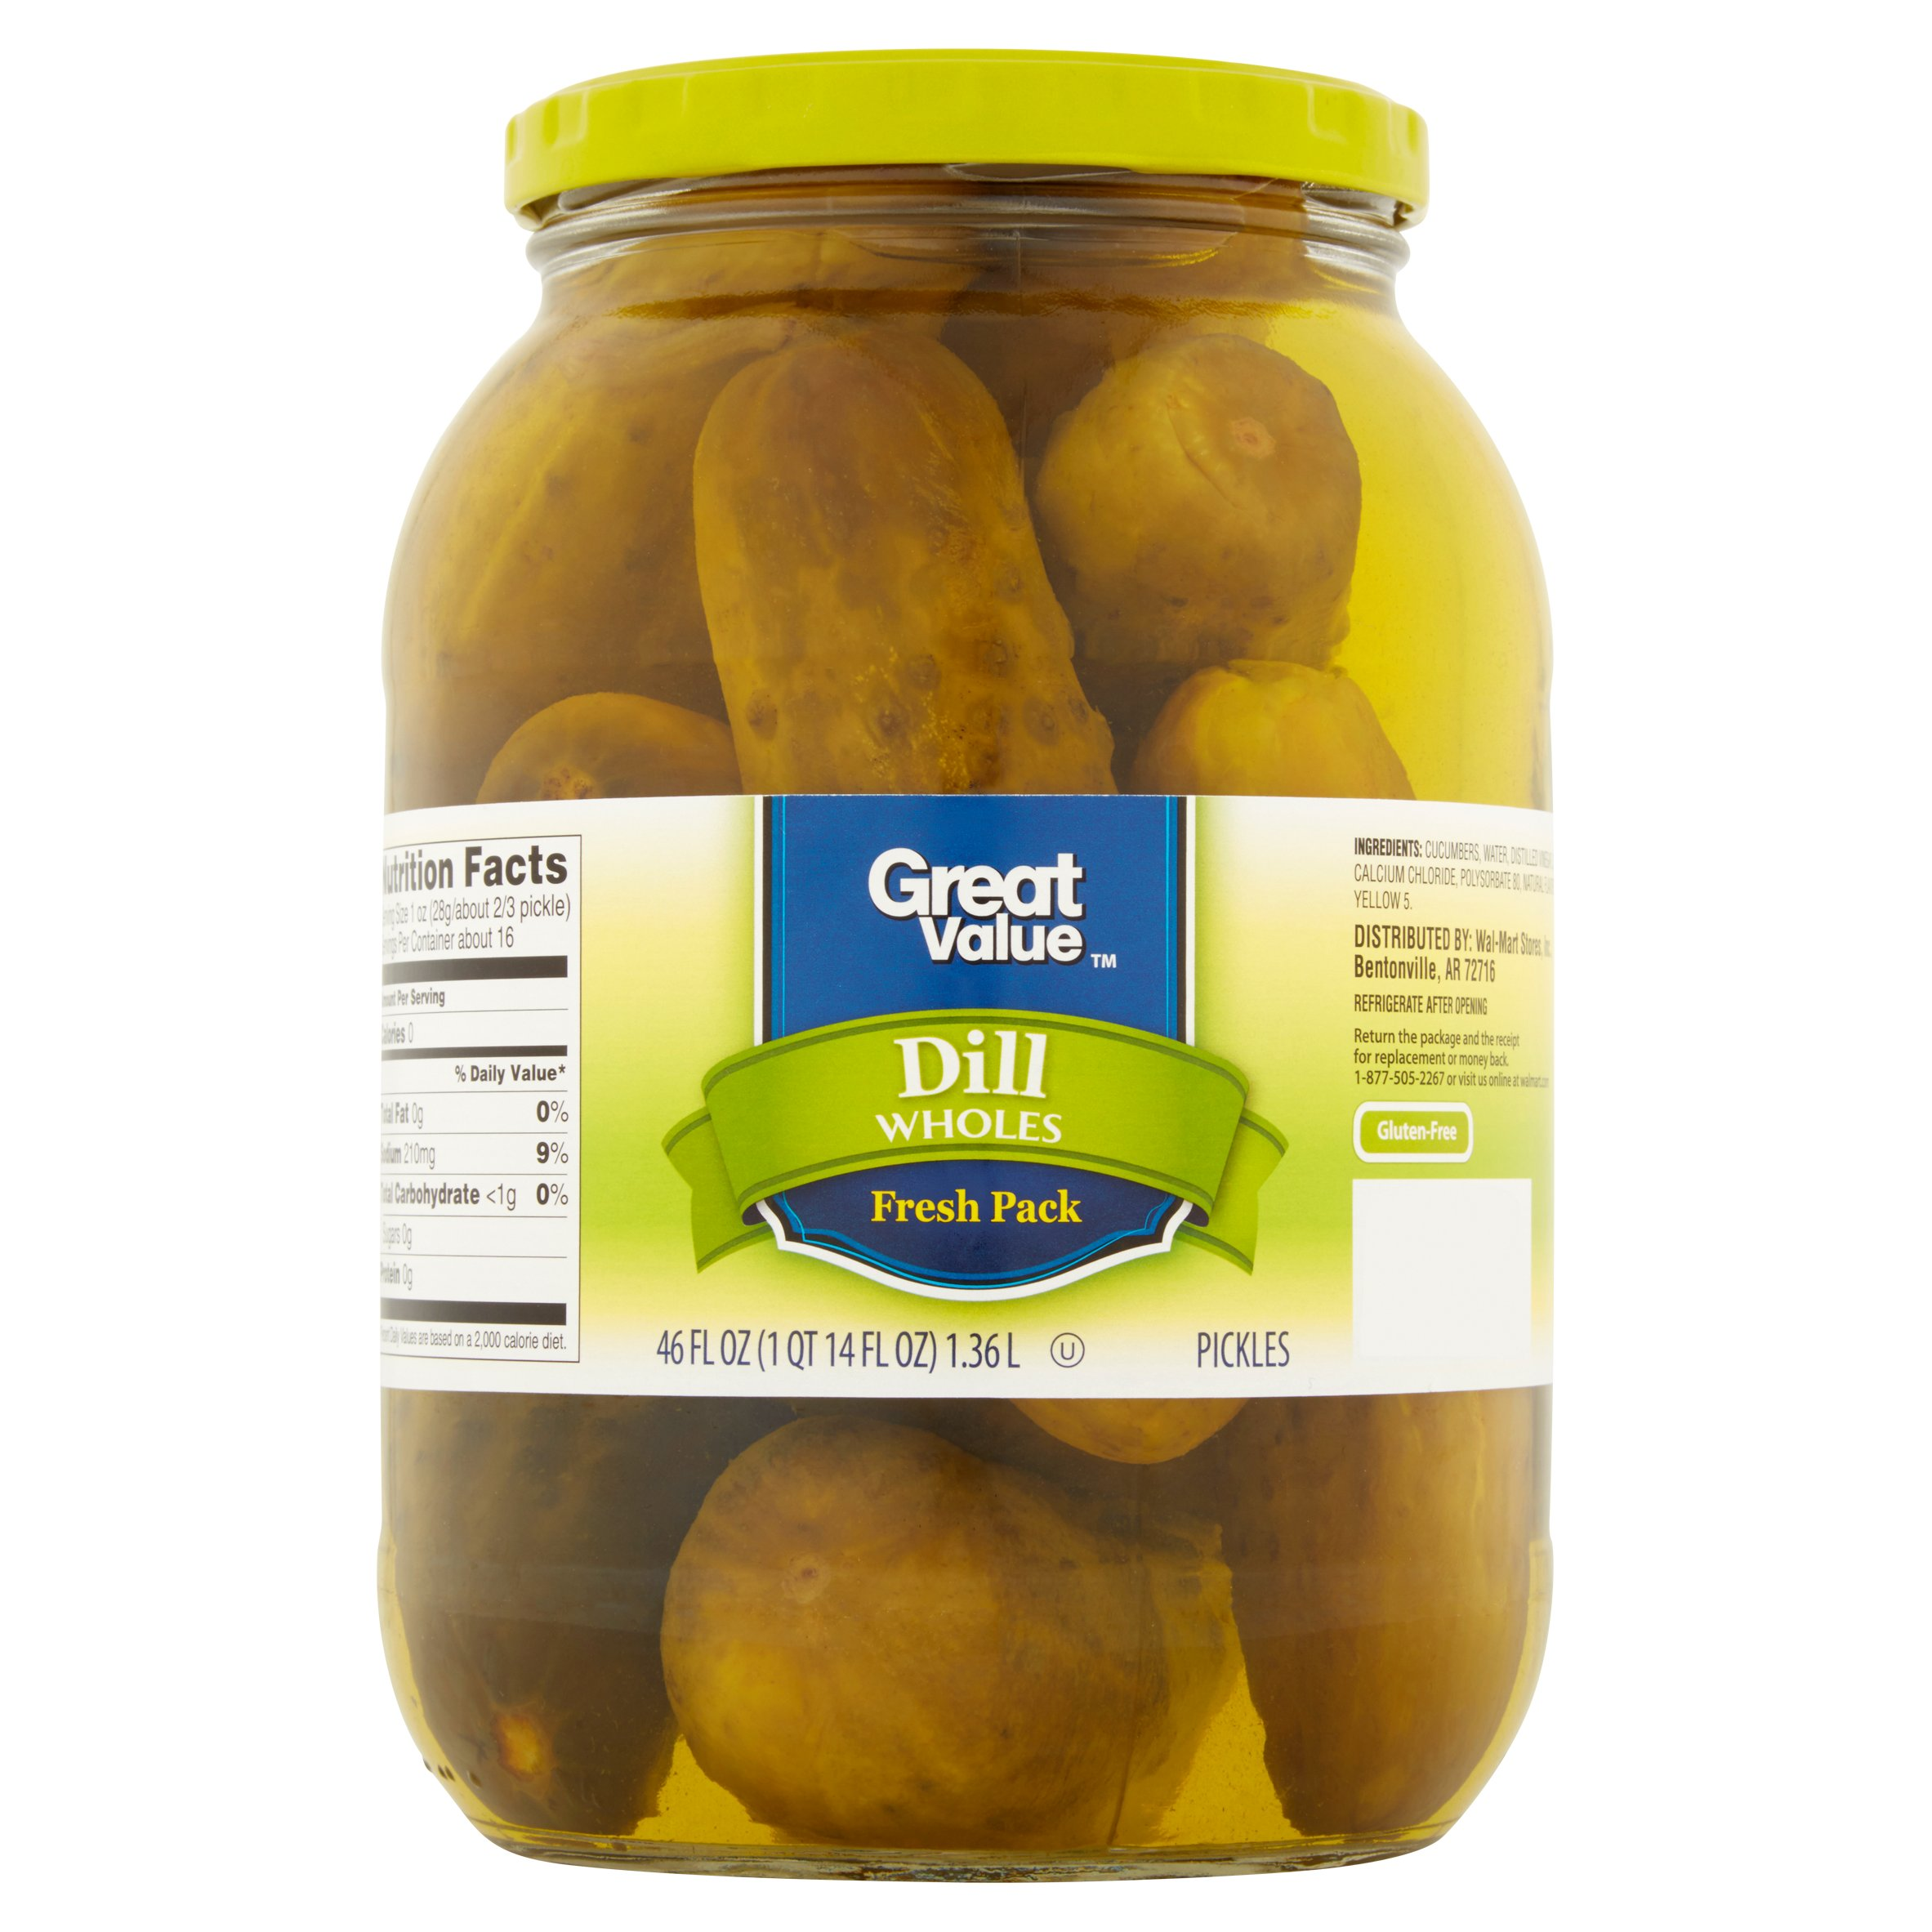 Great Value Whole Dill Pickles 46 fl. oz. Jar by Wal-Mart Stores, Inc.